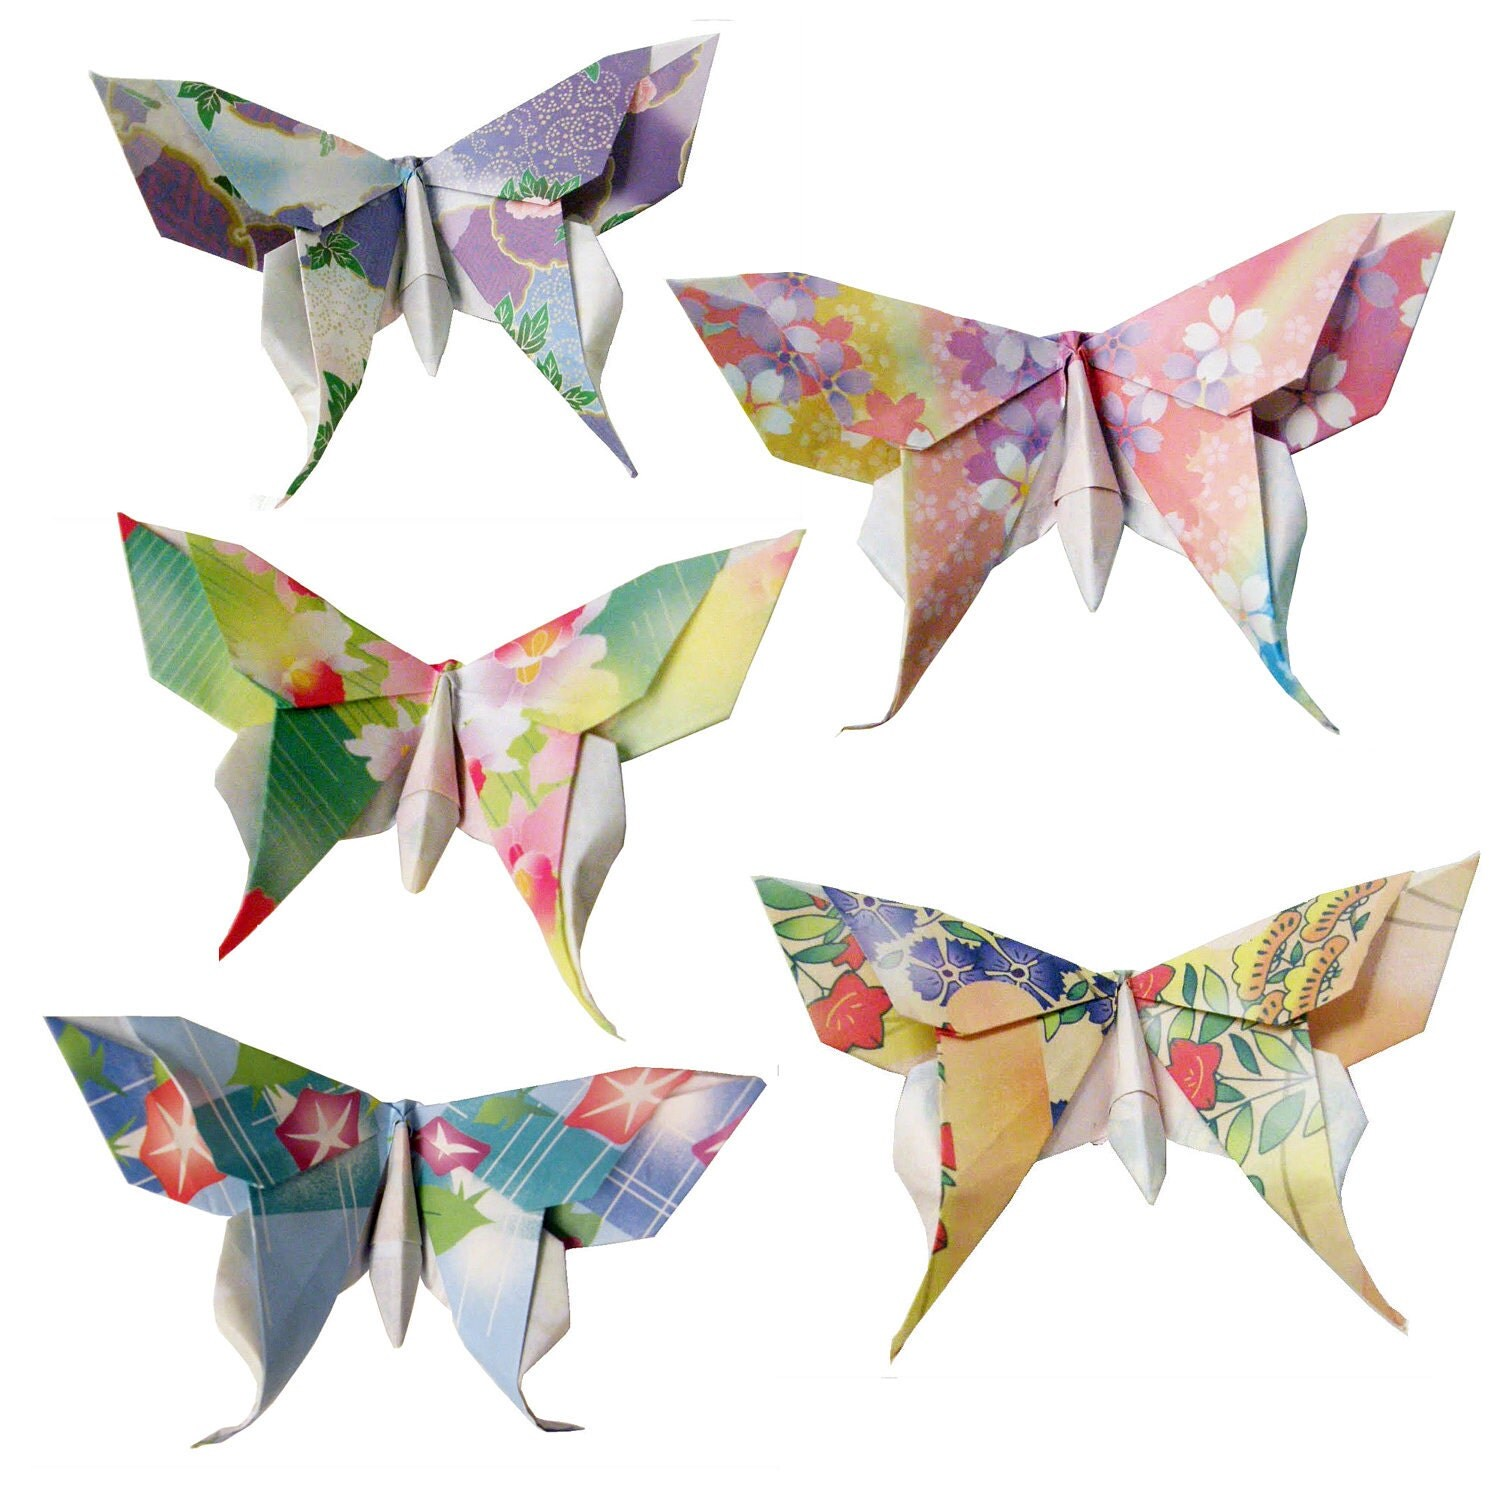 20 Small Swallowtail 3D Origami Butterflies by PullingPetals - photo#20